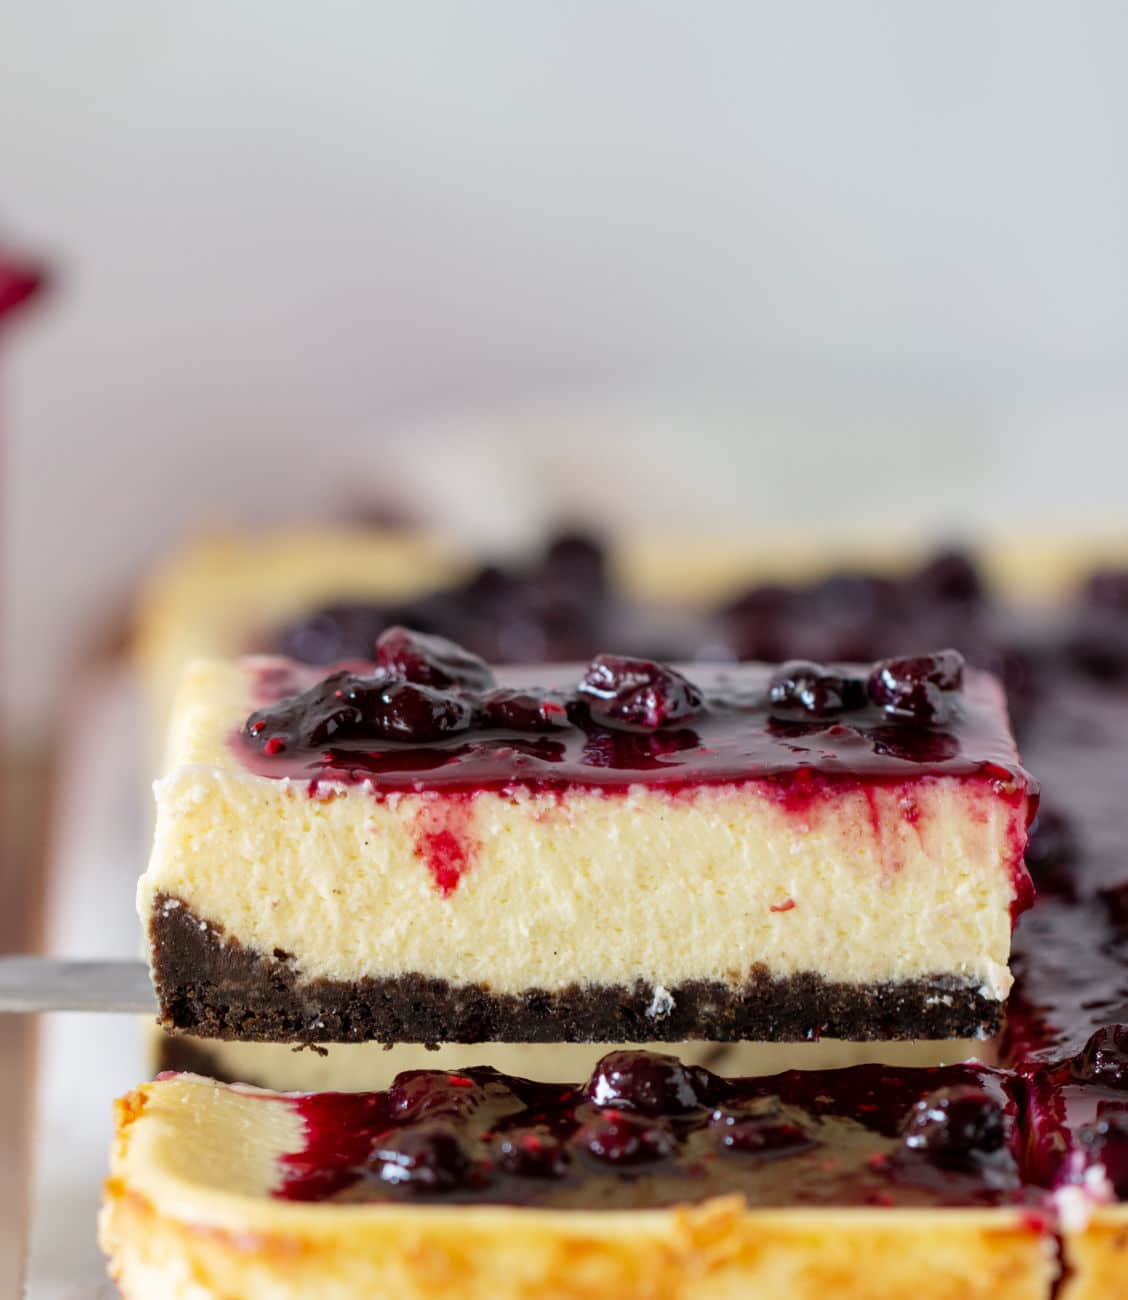 Slice of berry topped cheesecake being lifted from whole cake